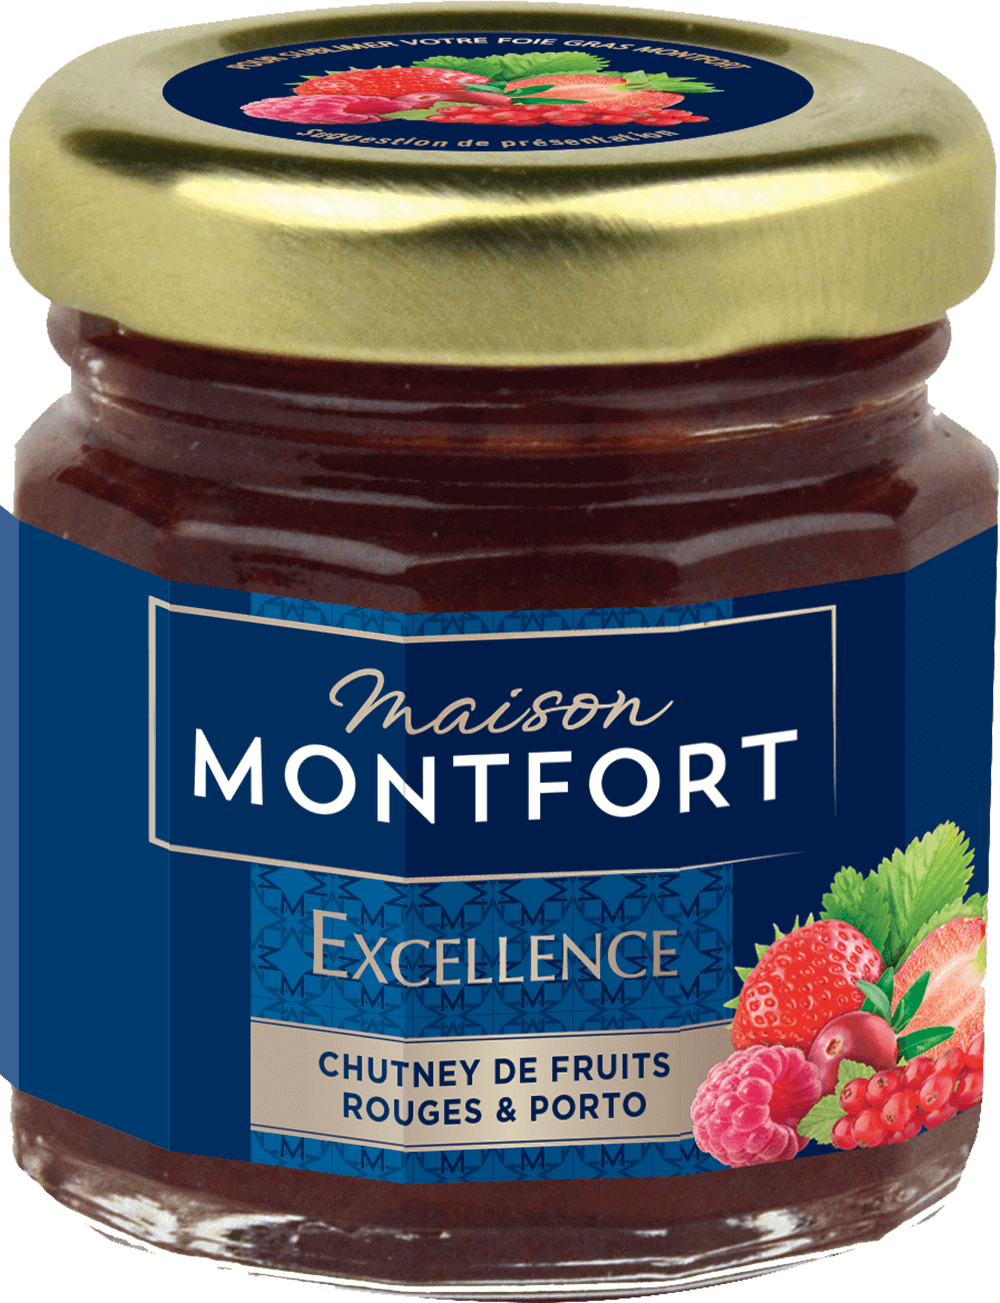 Chutney de fruits rouges au porto